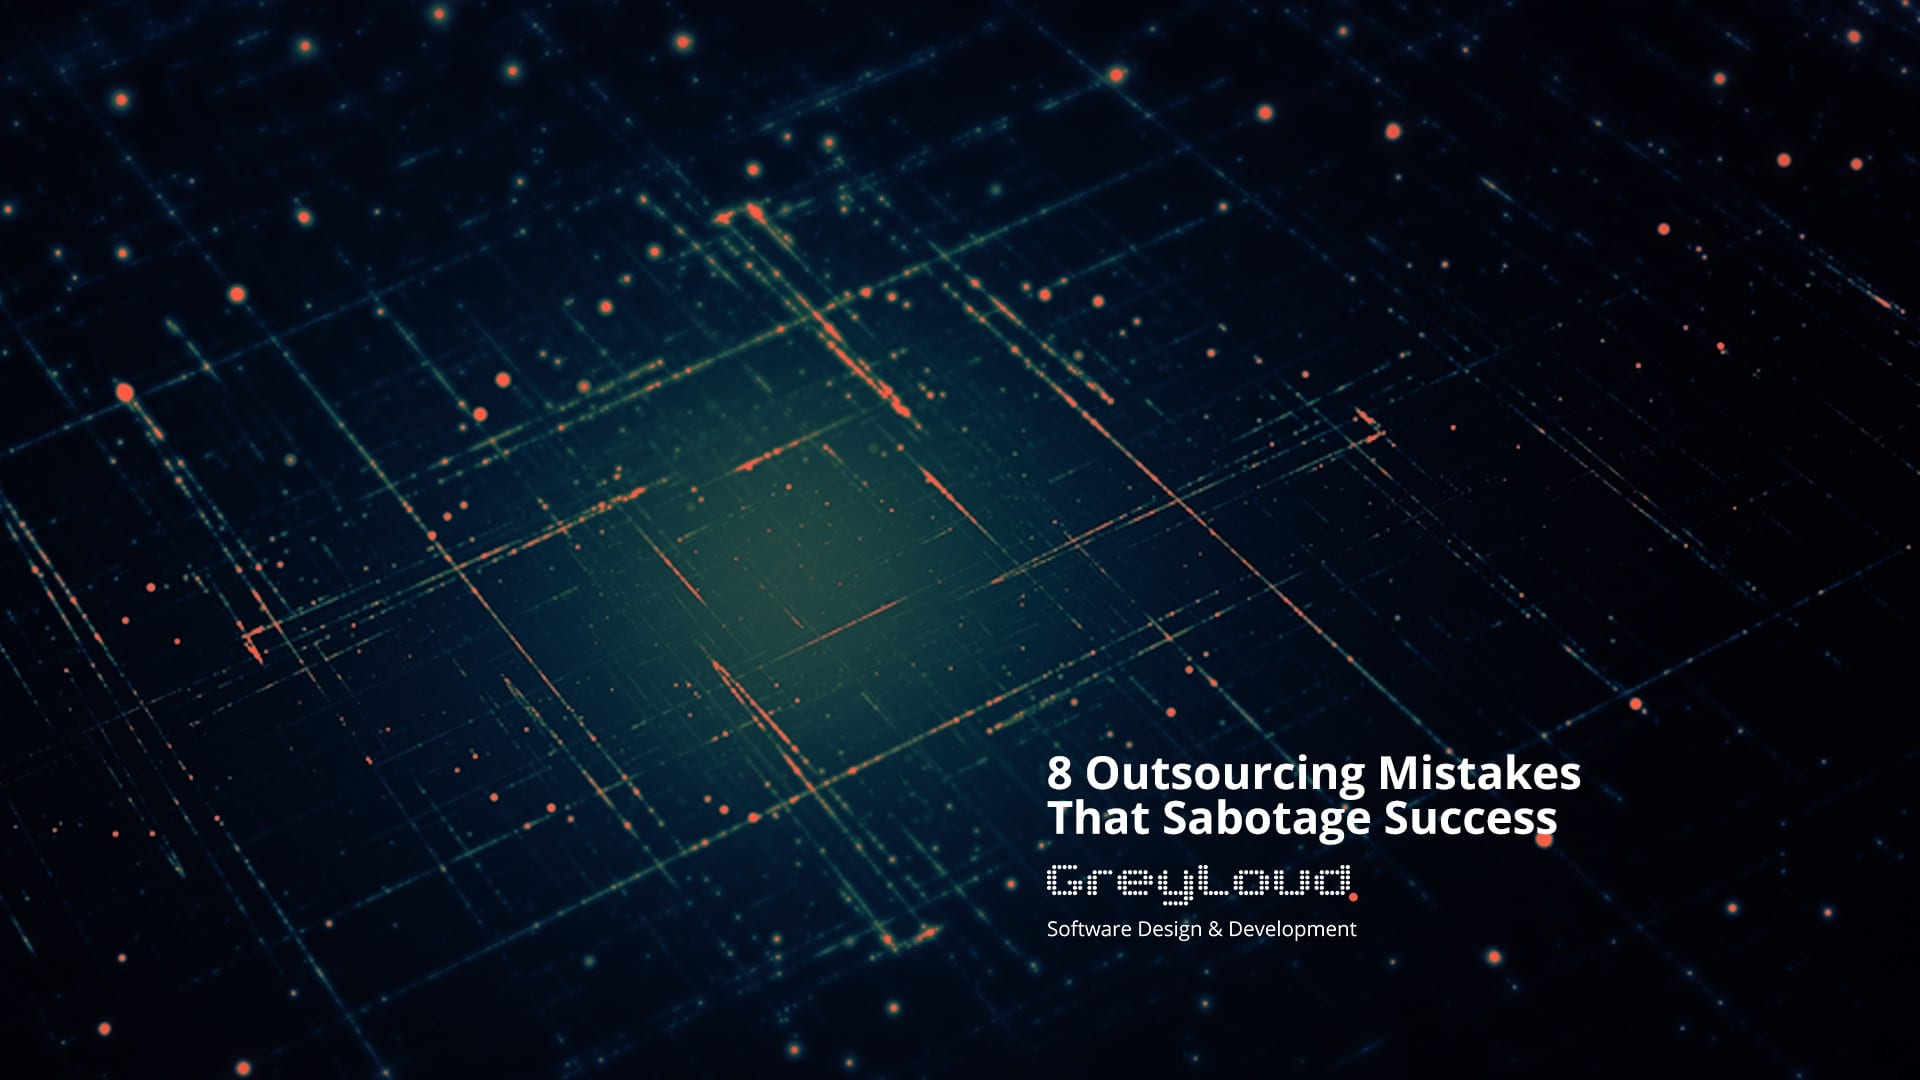 Outsourcing Mistakes